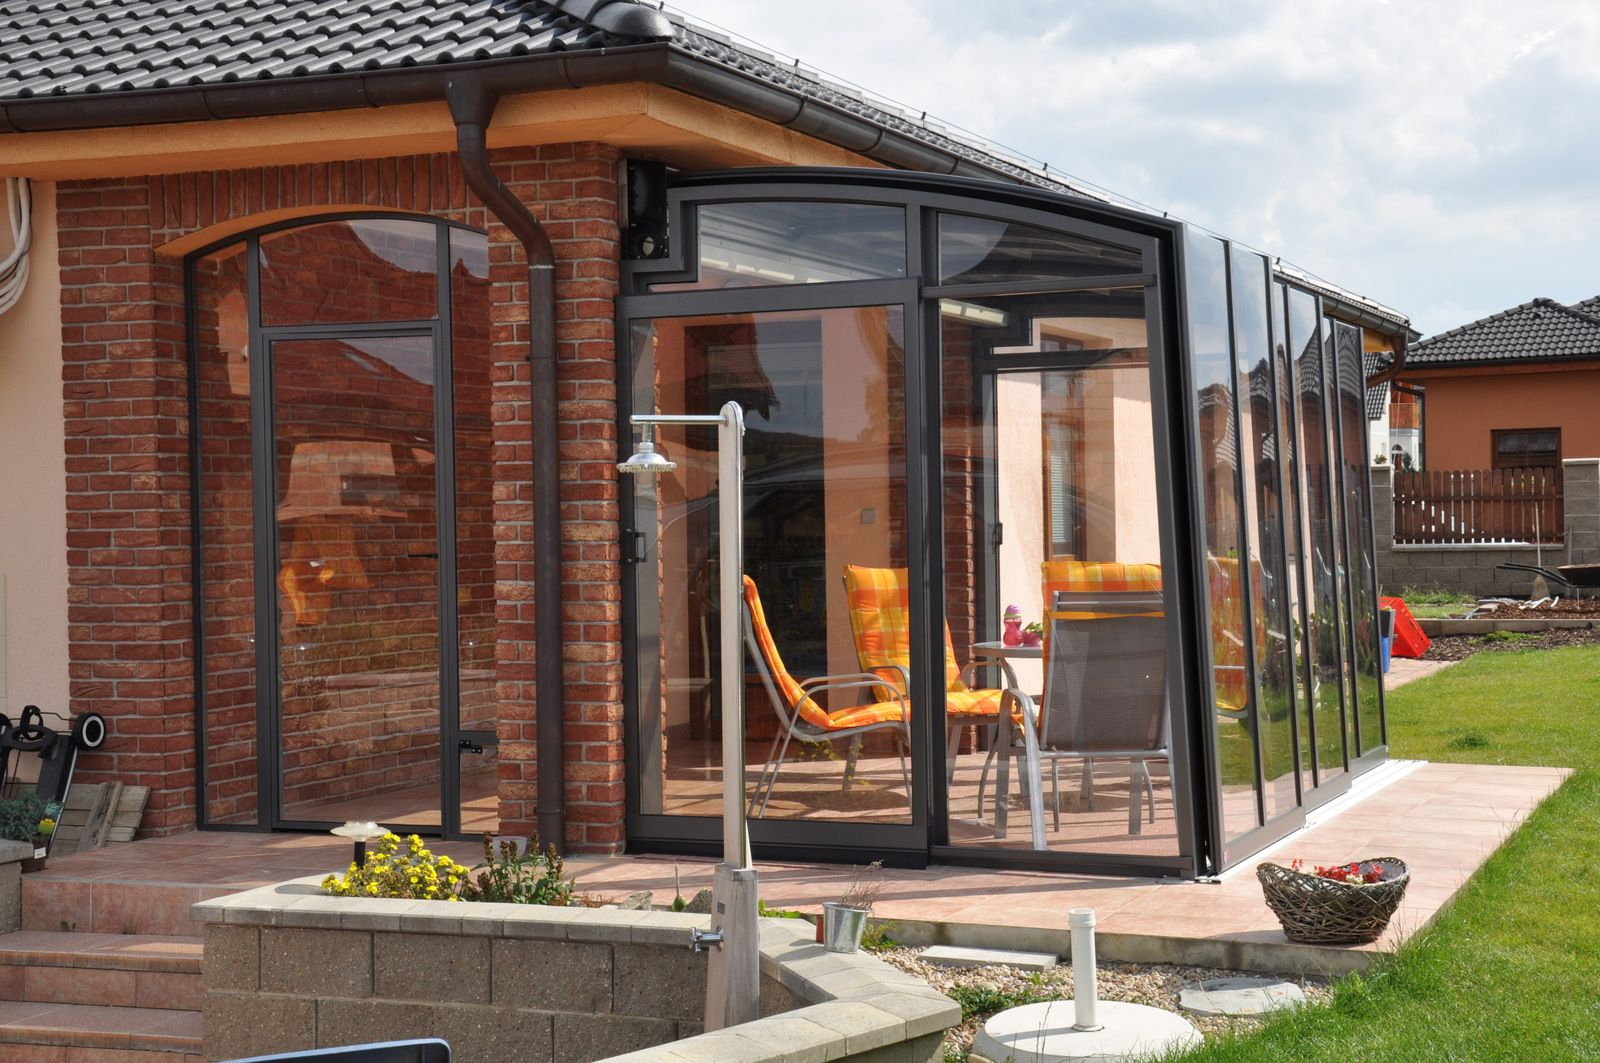 Transparent Polycarbonate And Safety Glass Panels Used On Terrace Enclosure Corso Patio Enclosures Enclosed Patio Patio